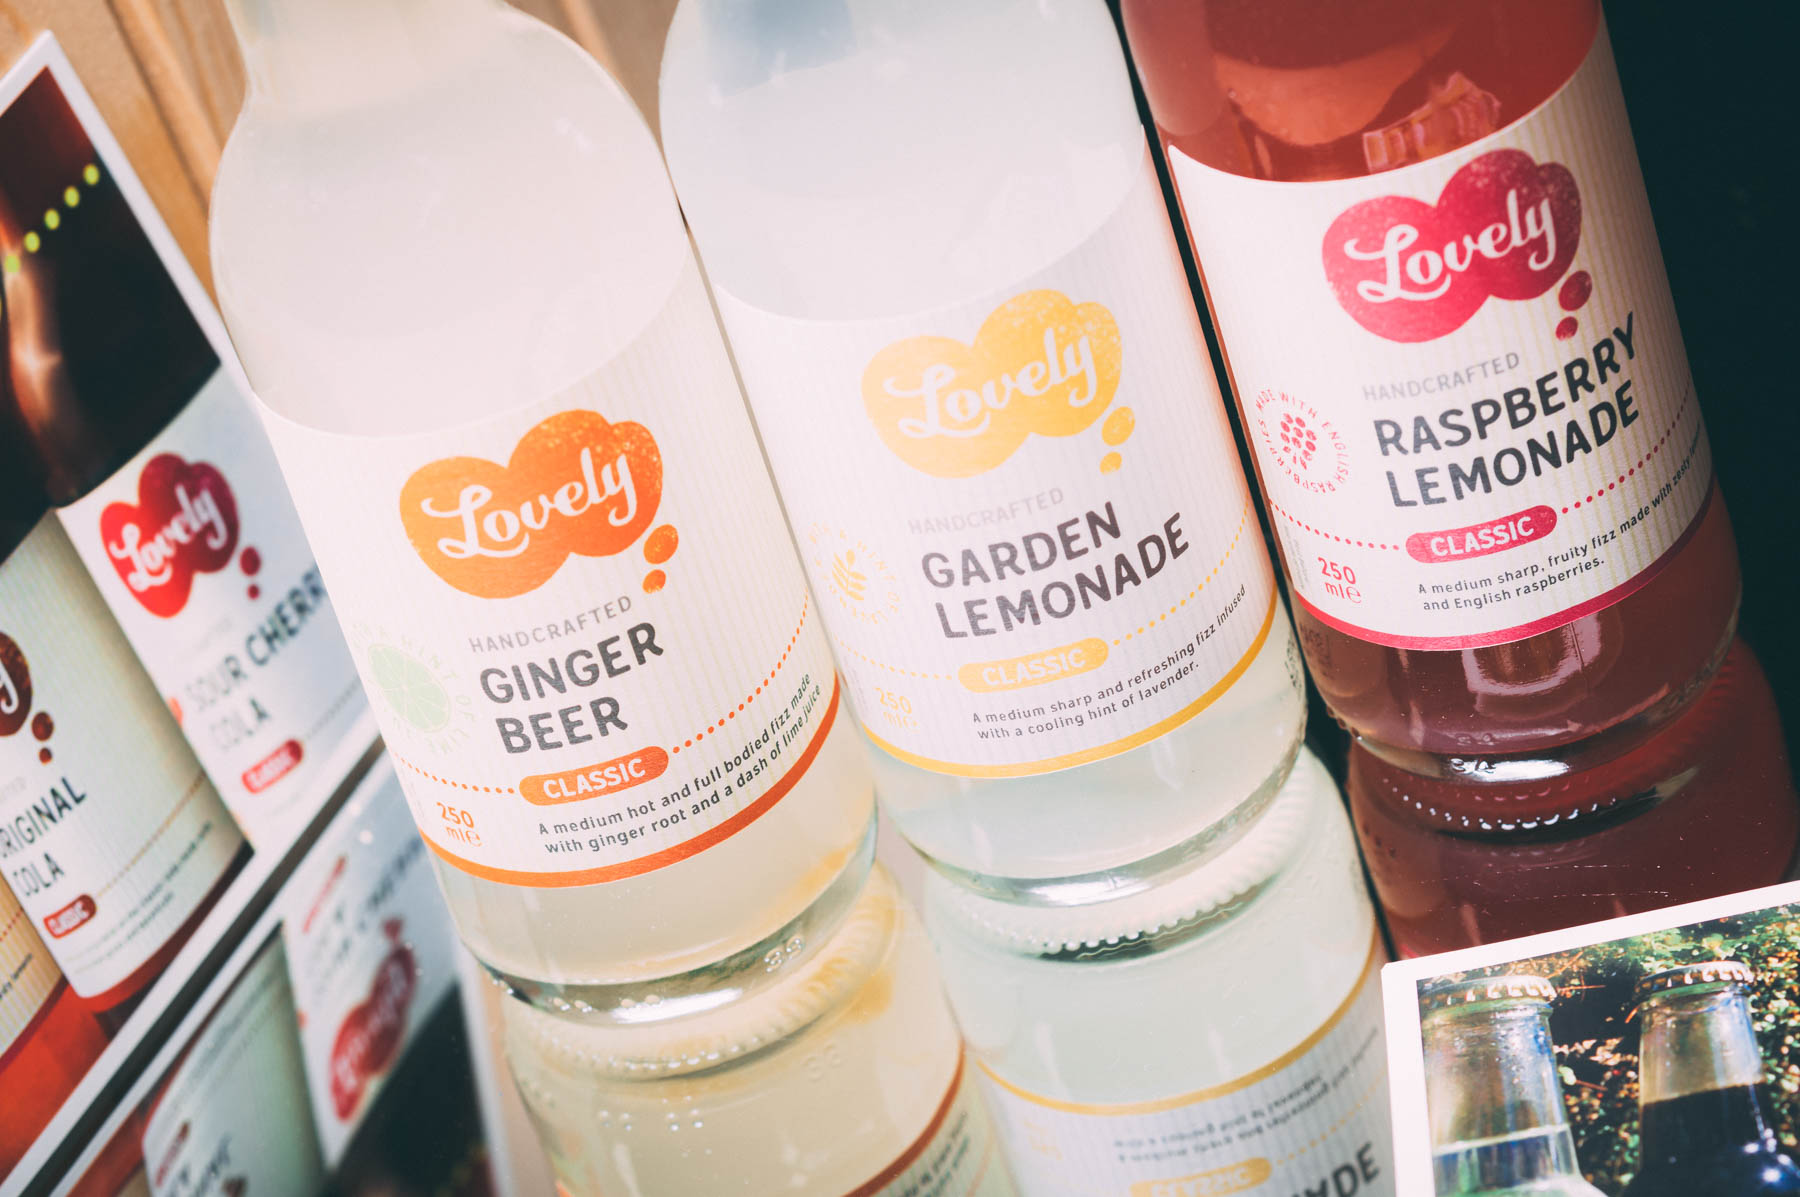 lovely drinks premium sodas